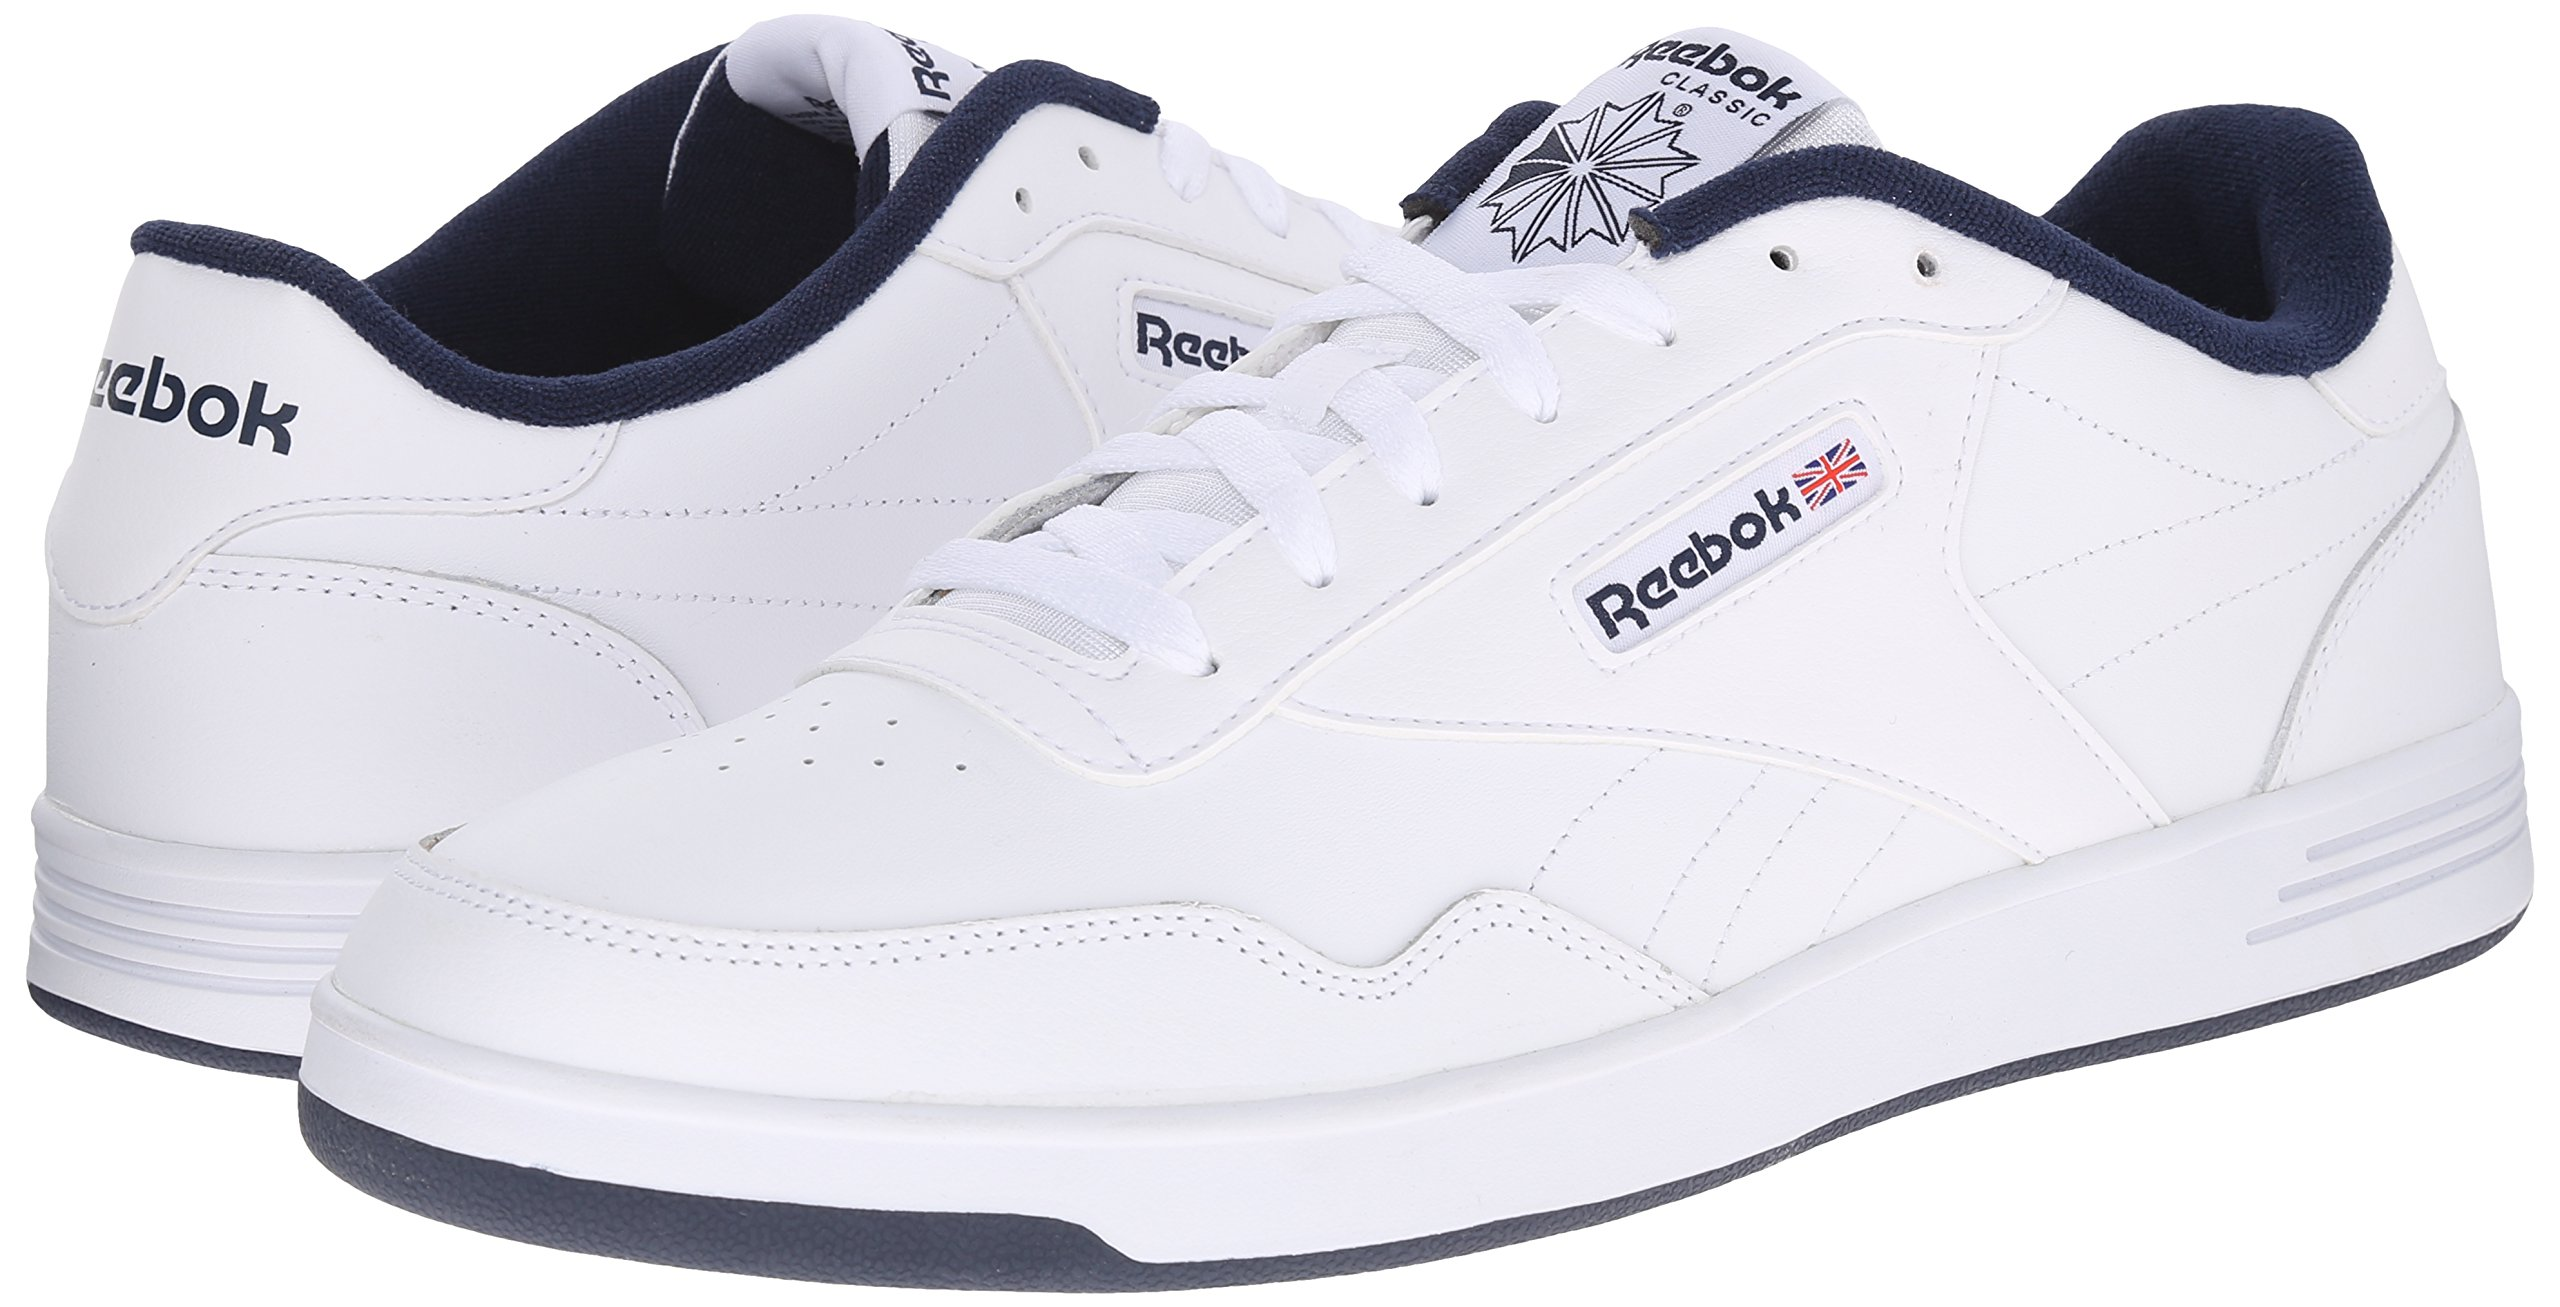 Reebok Men's Club Memt Fashion Sneaker, White/Collegiate Navy, 11.5 4E US